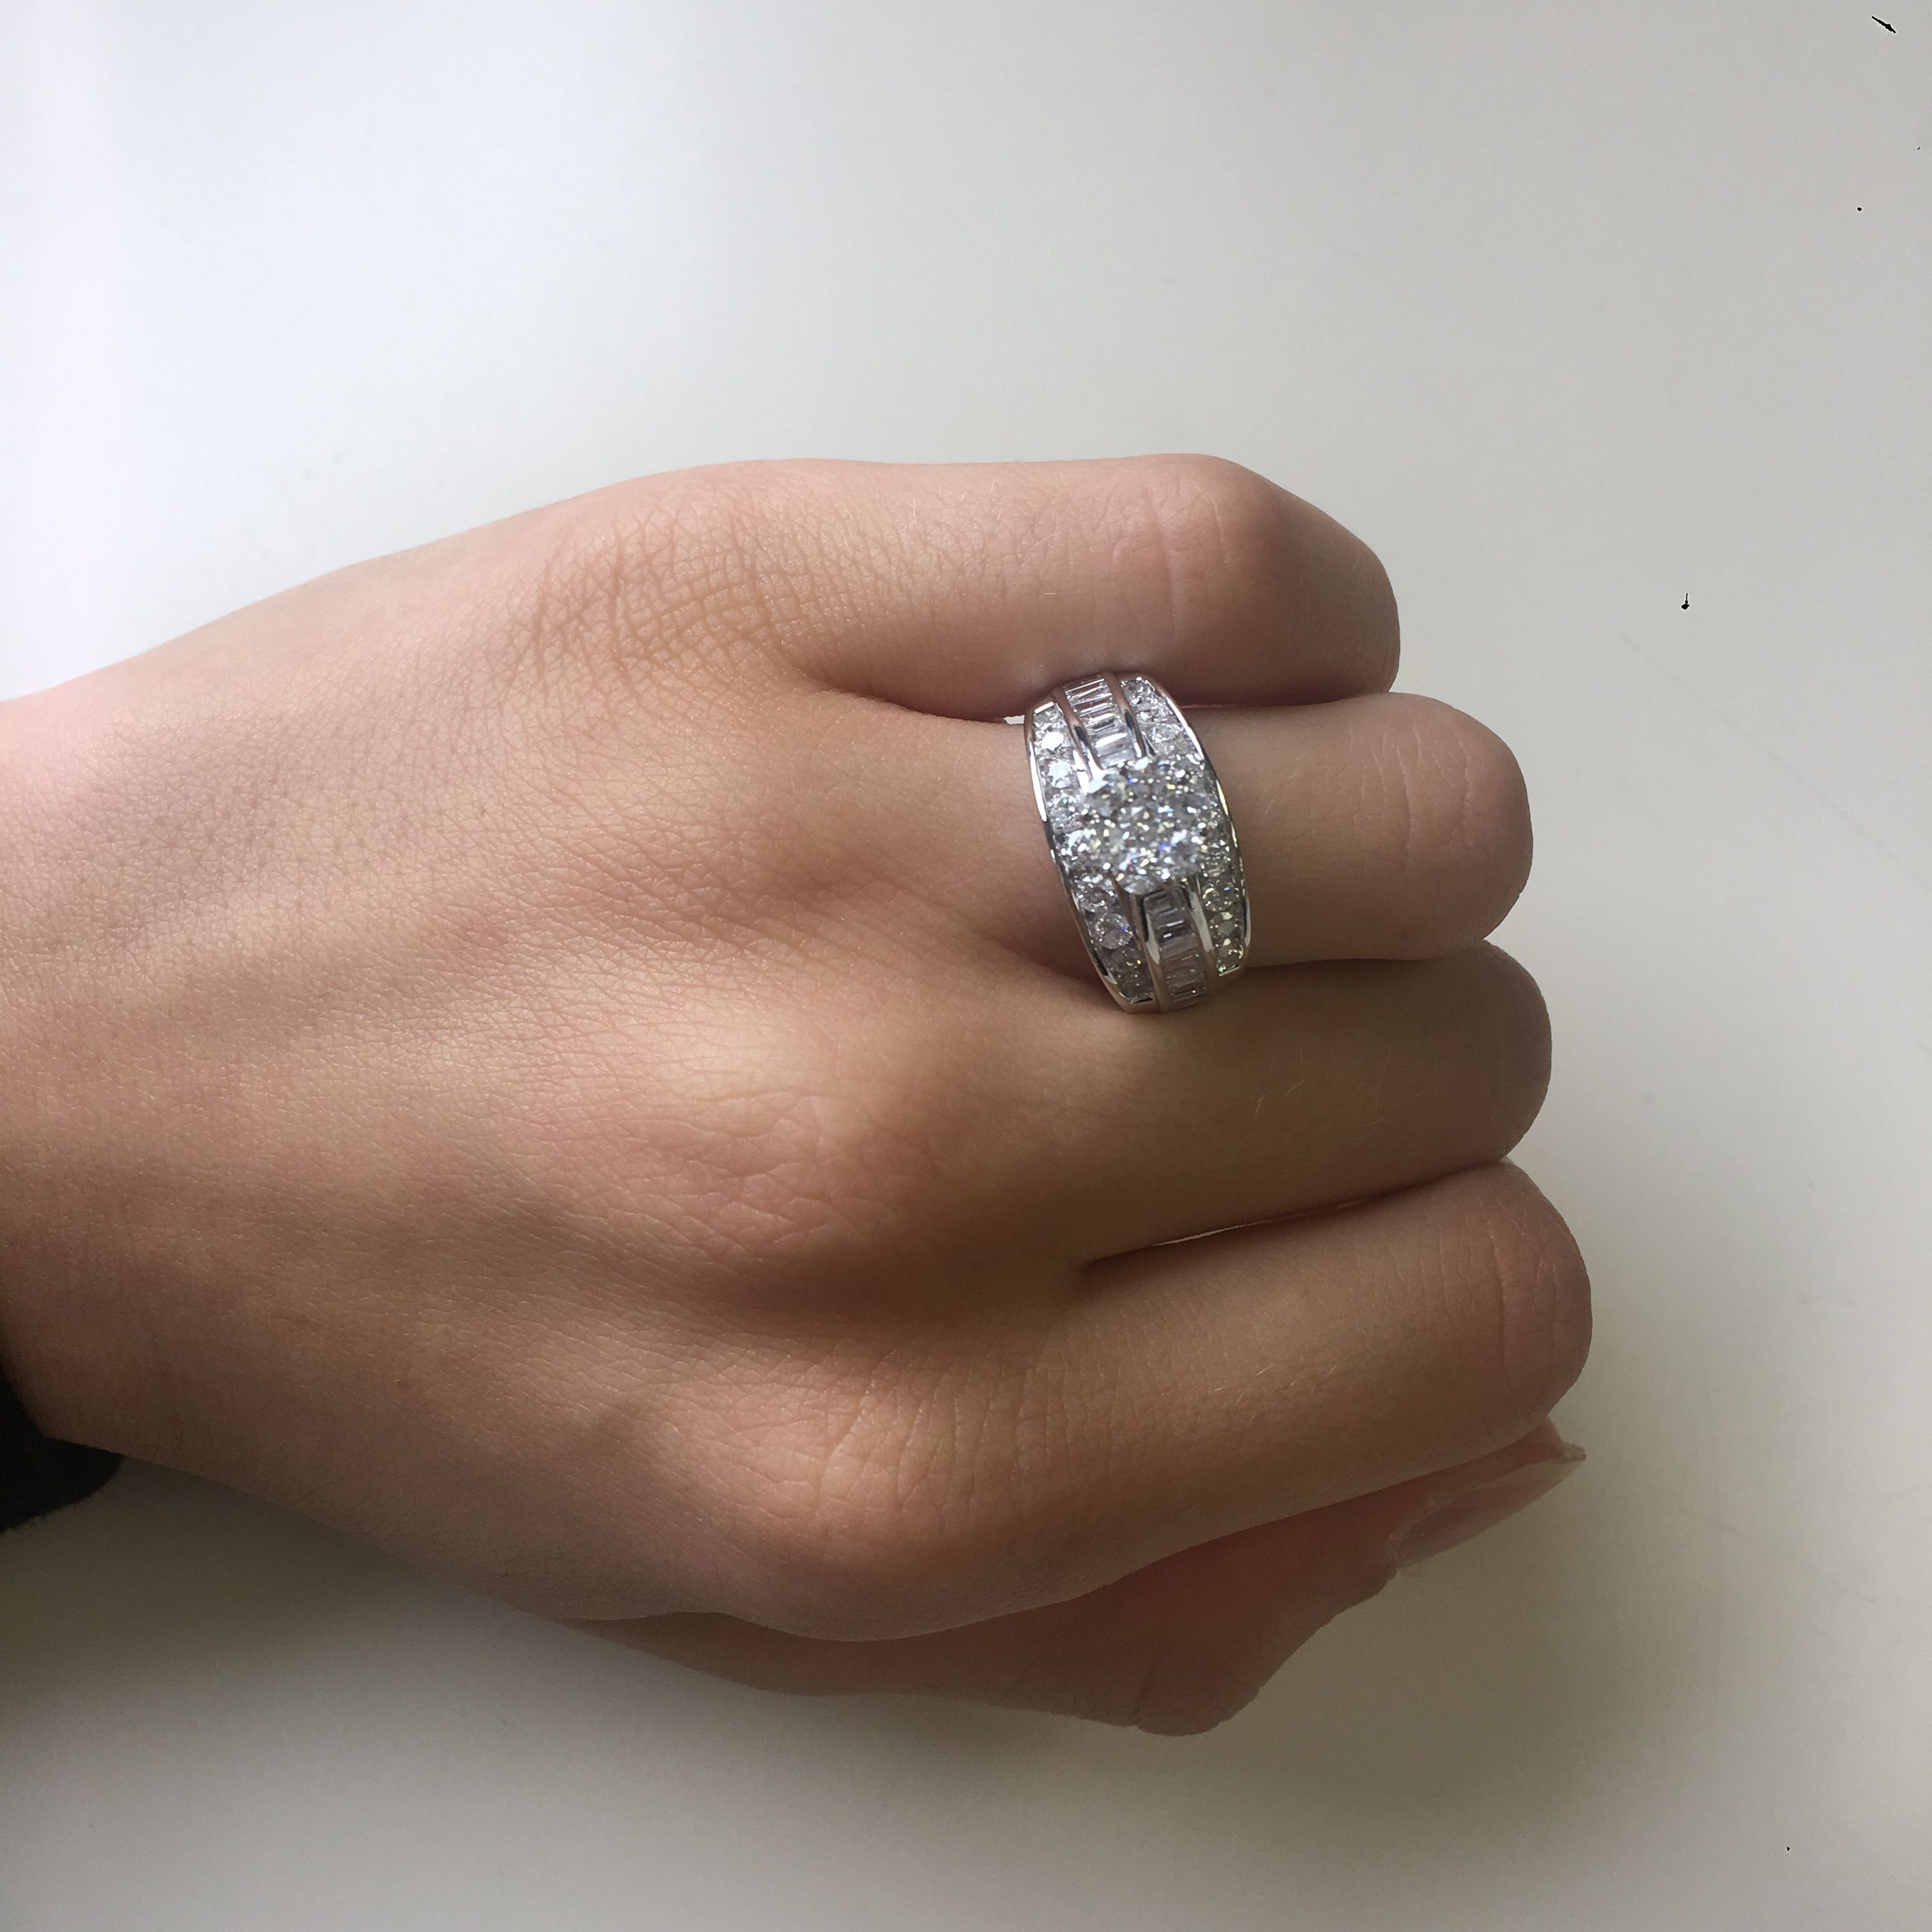 This Matching 1 5 8 Carat T W Diamond Ladies Engagement Ring Is Made In 10k White Gold An Diamond Cluster Engagement Ring 14k Engagement Ring Engagement Rings